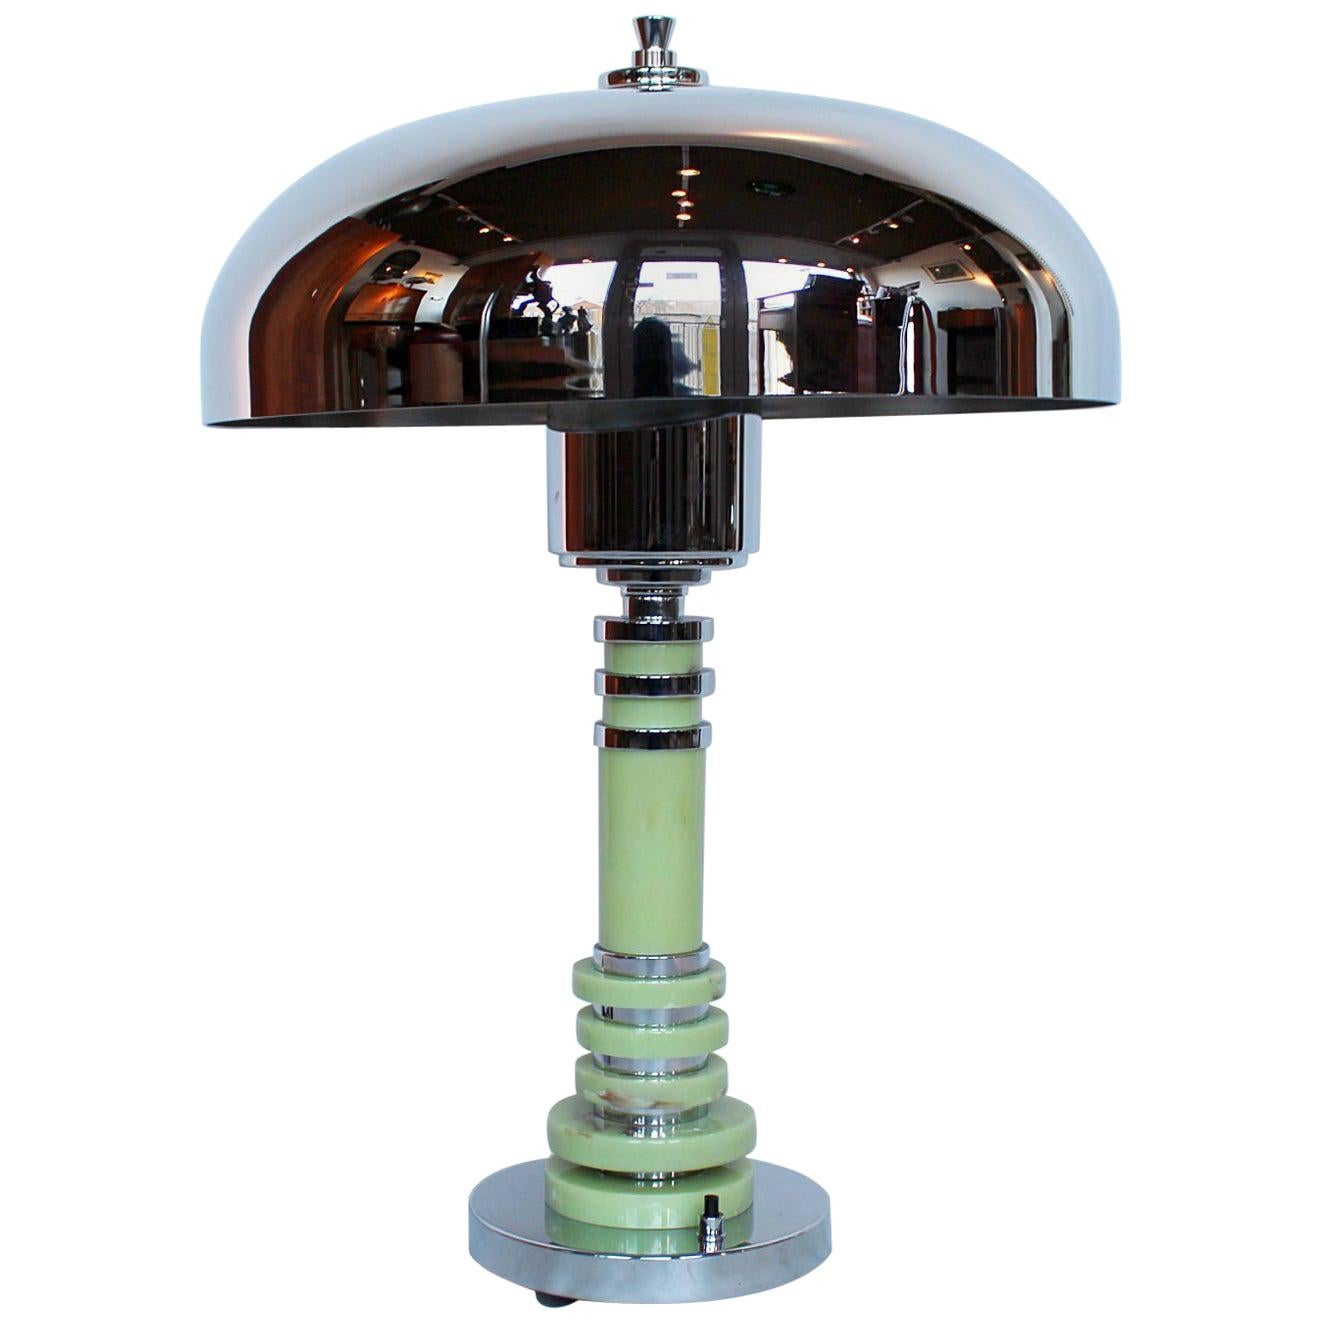 Art Deco Table Style Lamp With Chrome Shade and Mint Green Bakelite Stem.